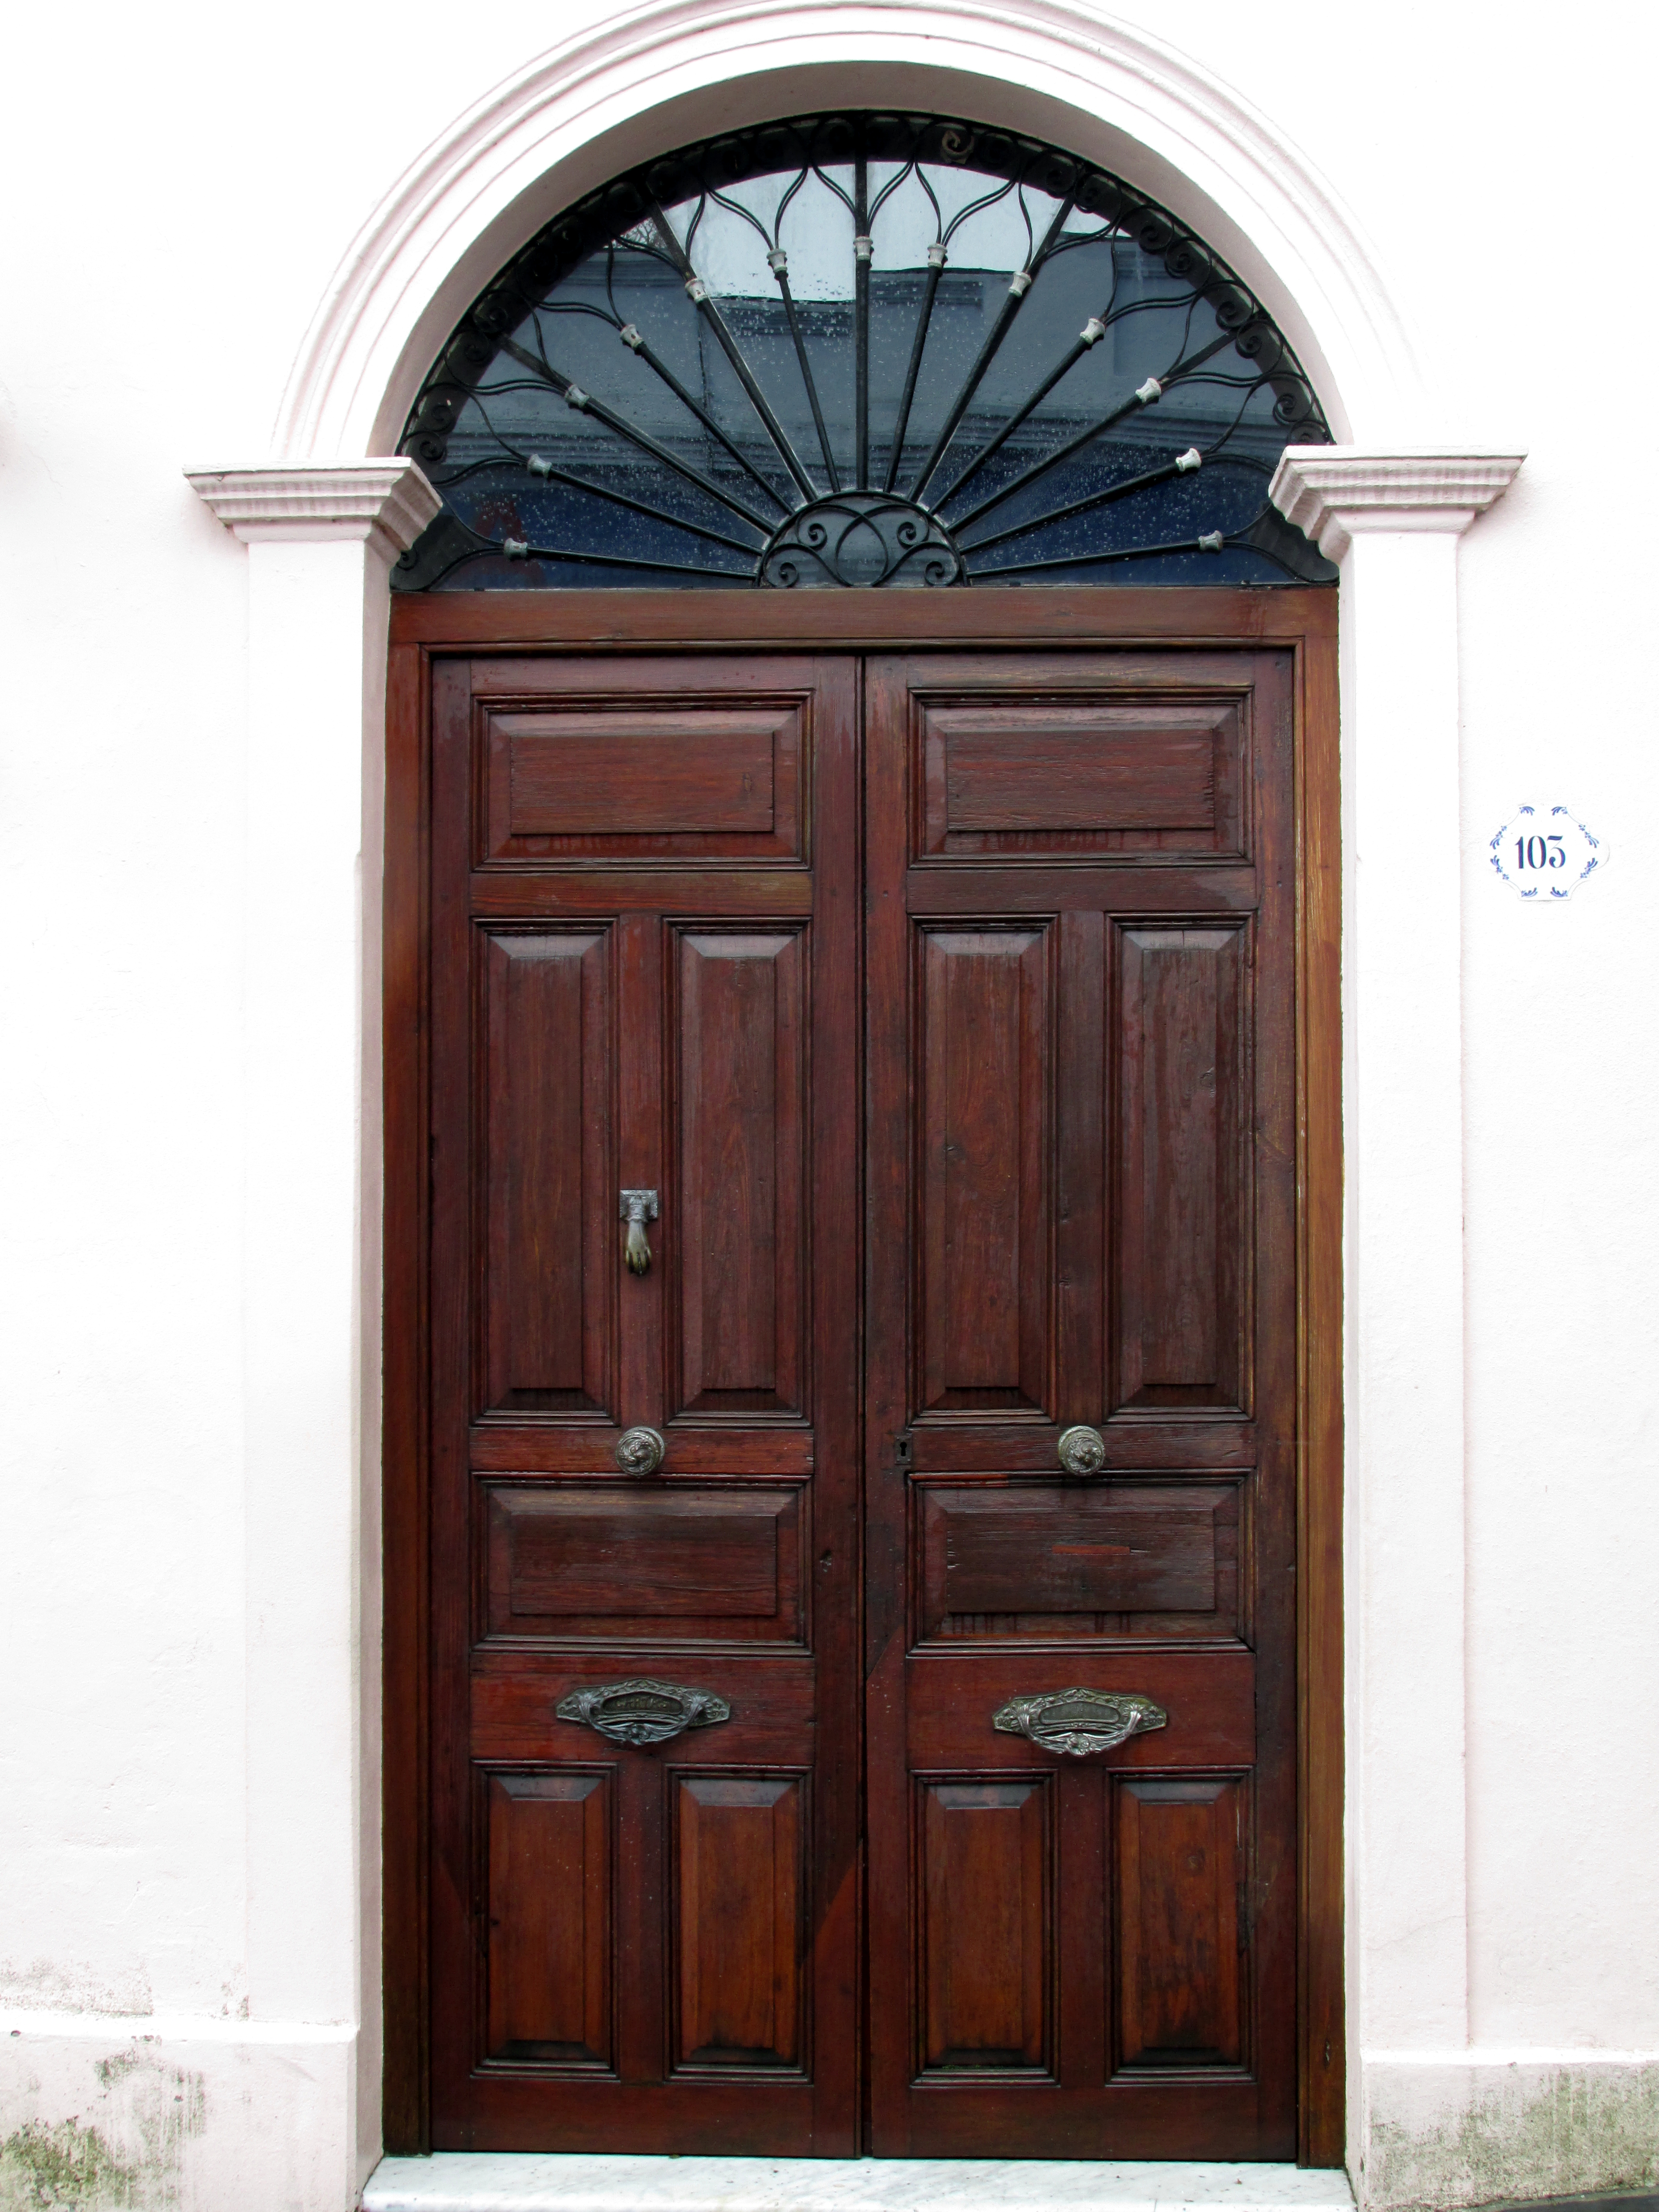 DOORS OF SOUTH AMERICA HOME SOUTH AMERICA PLACES TO VISIT  sc 1 st  South America to the World & JANUARY´S FEATURED DOOR OF THE MONTH u2013 COLONIA DEL SACRAMENTO ...